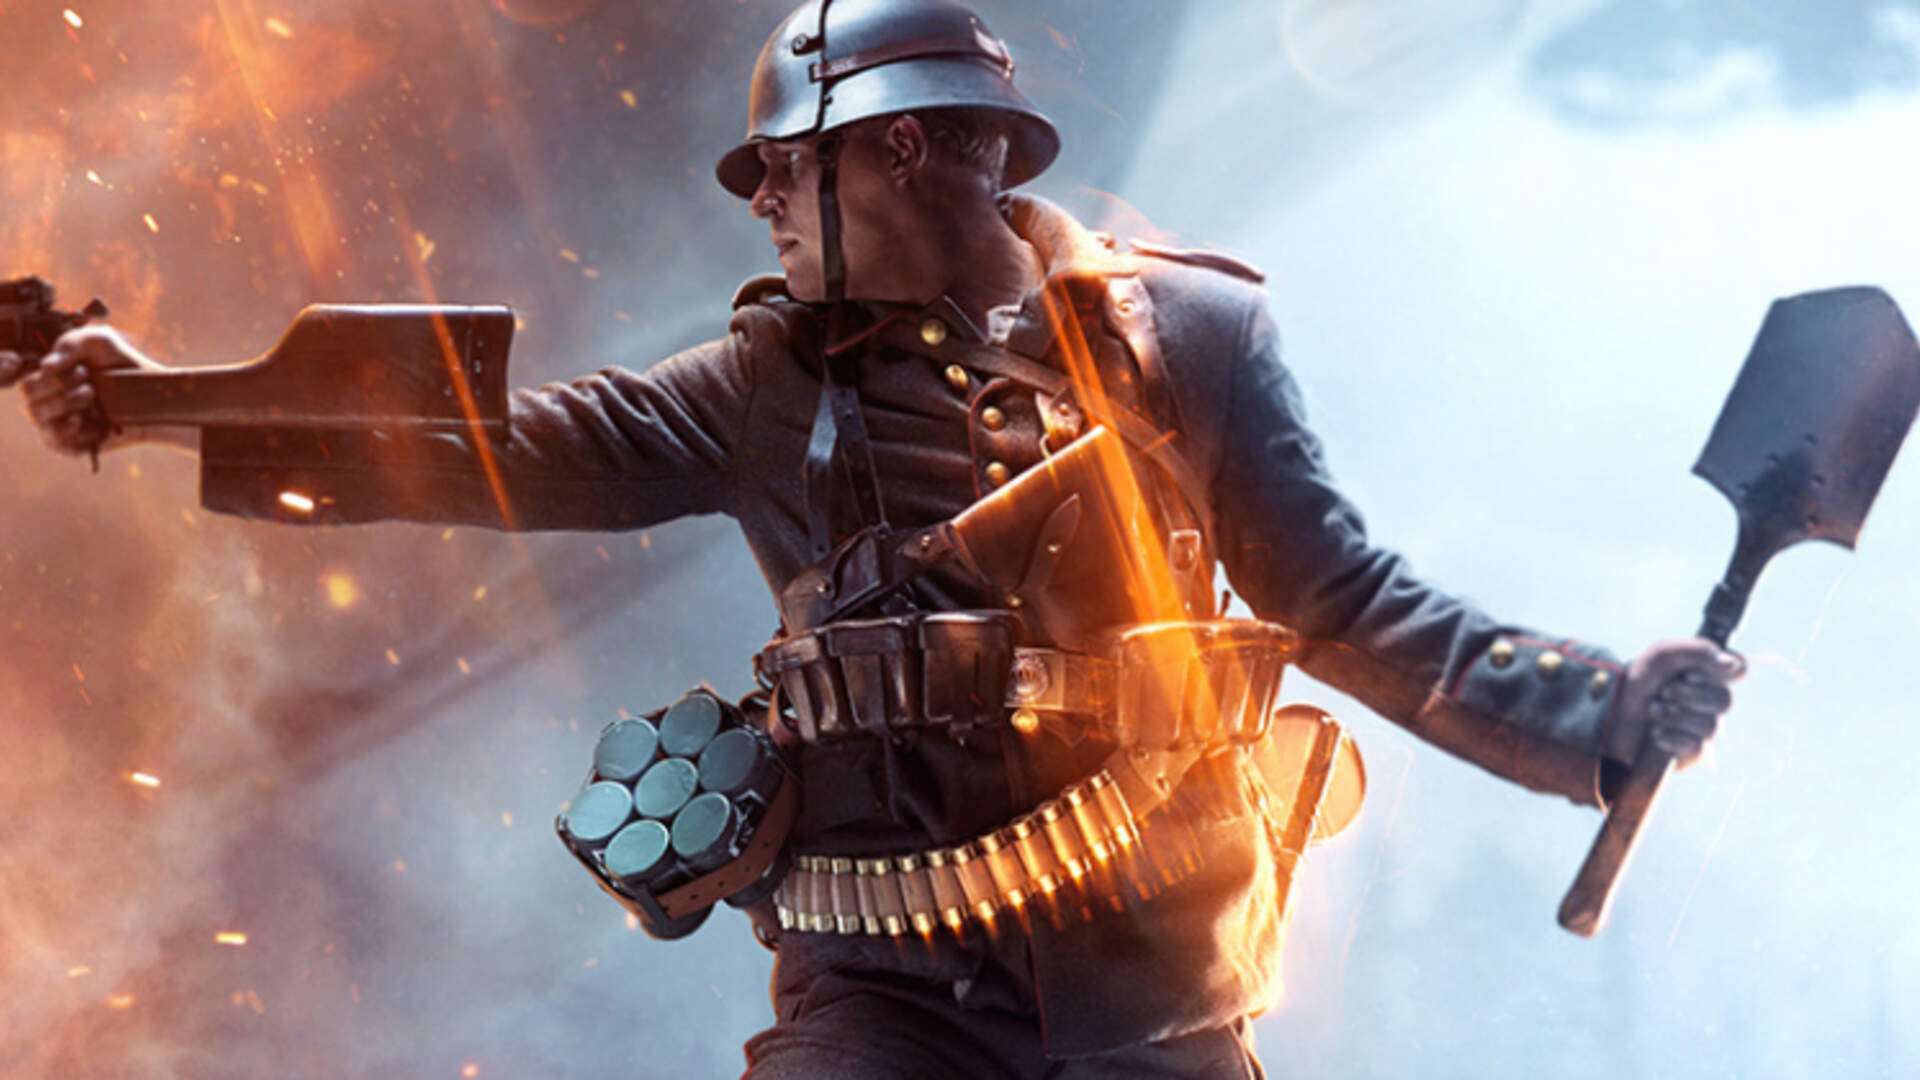 Battlefield 1 Update Offers New Map, Grenade Crossbow, and Spectator Mode